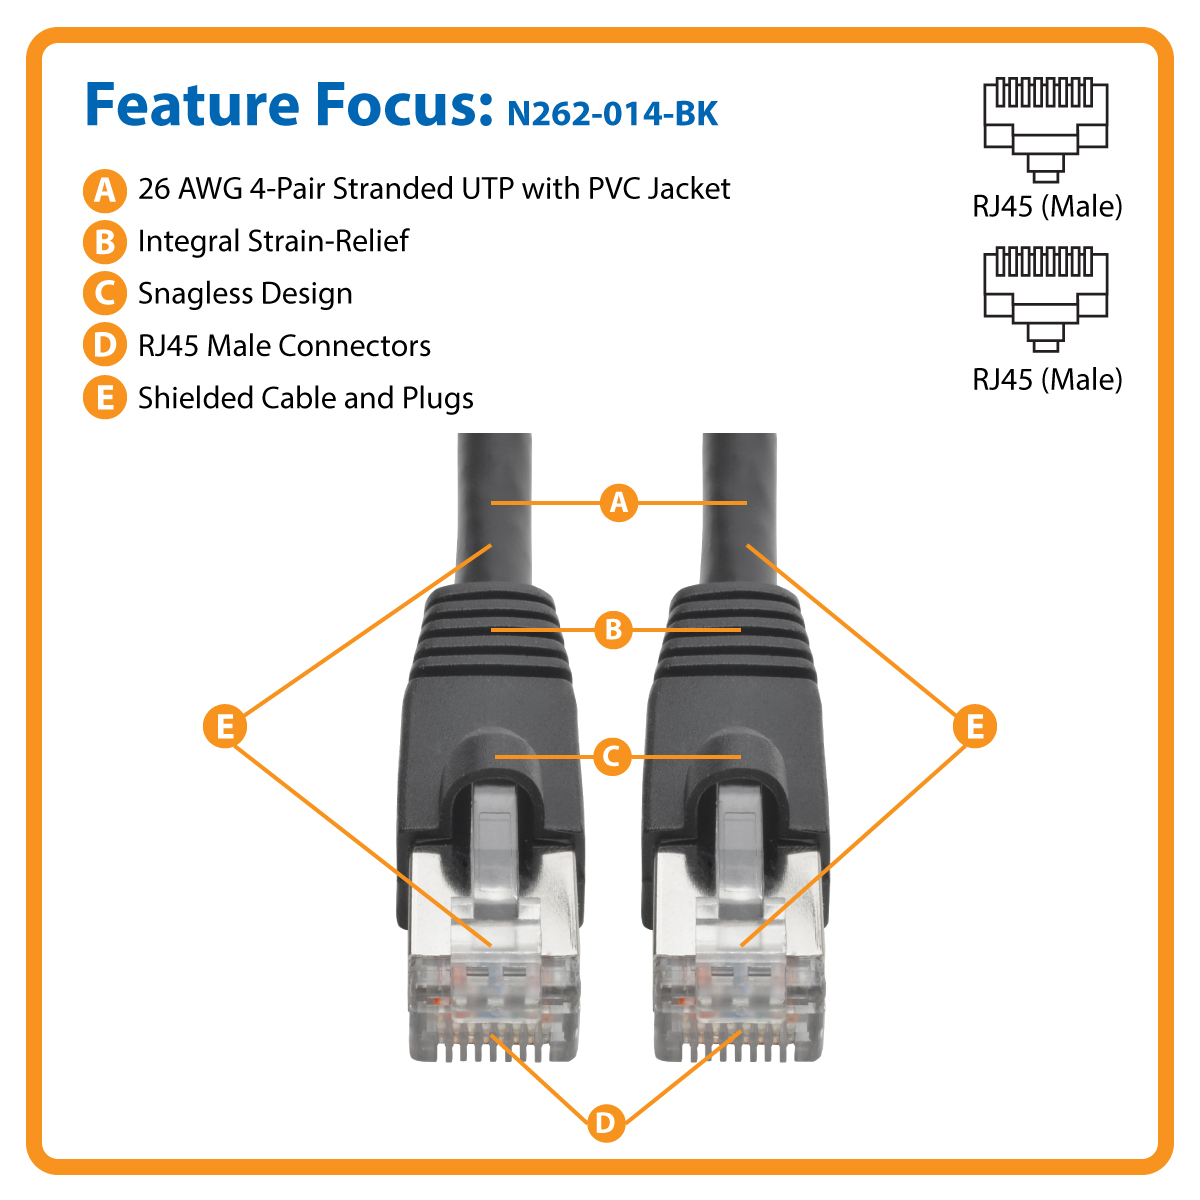 Tripp Lite Cat6a 10g Certified Snagless Shielded Stp Poe Patch N262 Cat5e Rj45 Ethernet Cable 26 Awg Pvc Jacket Gray 150 Ft Delivers Superior Signal Quality With Top Of The Line Construction